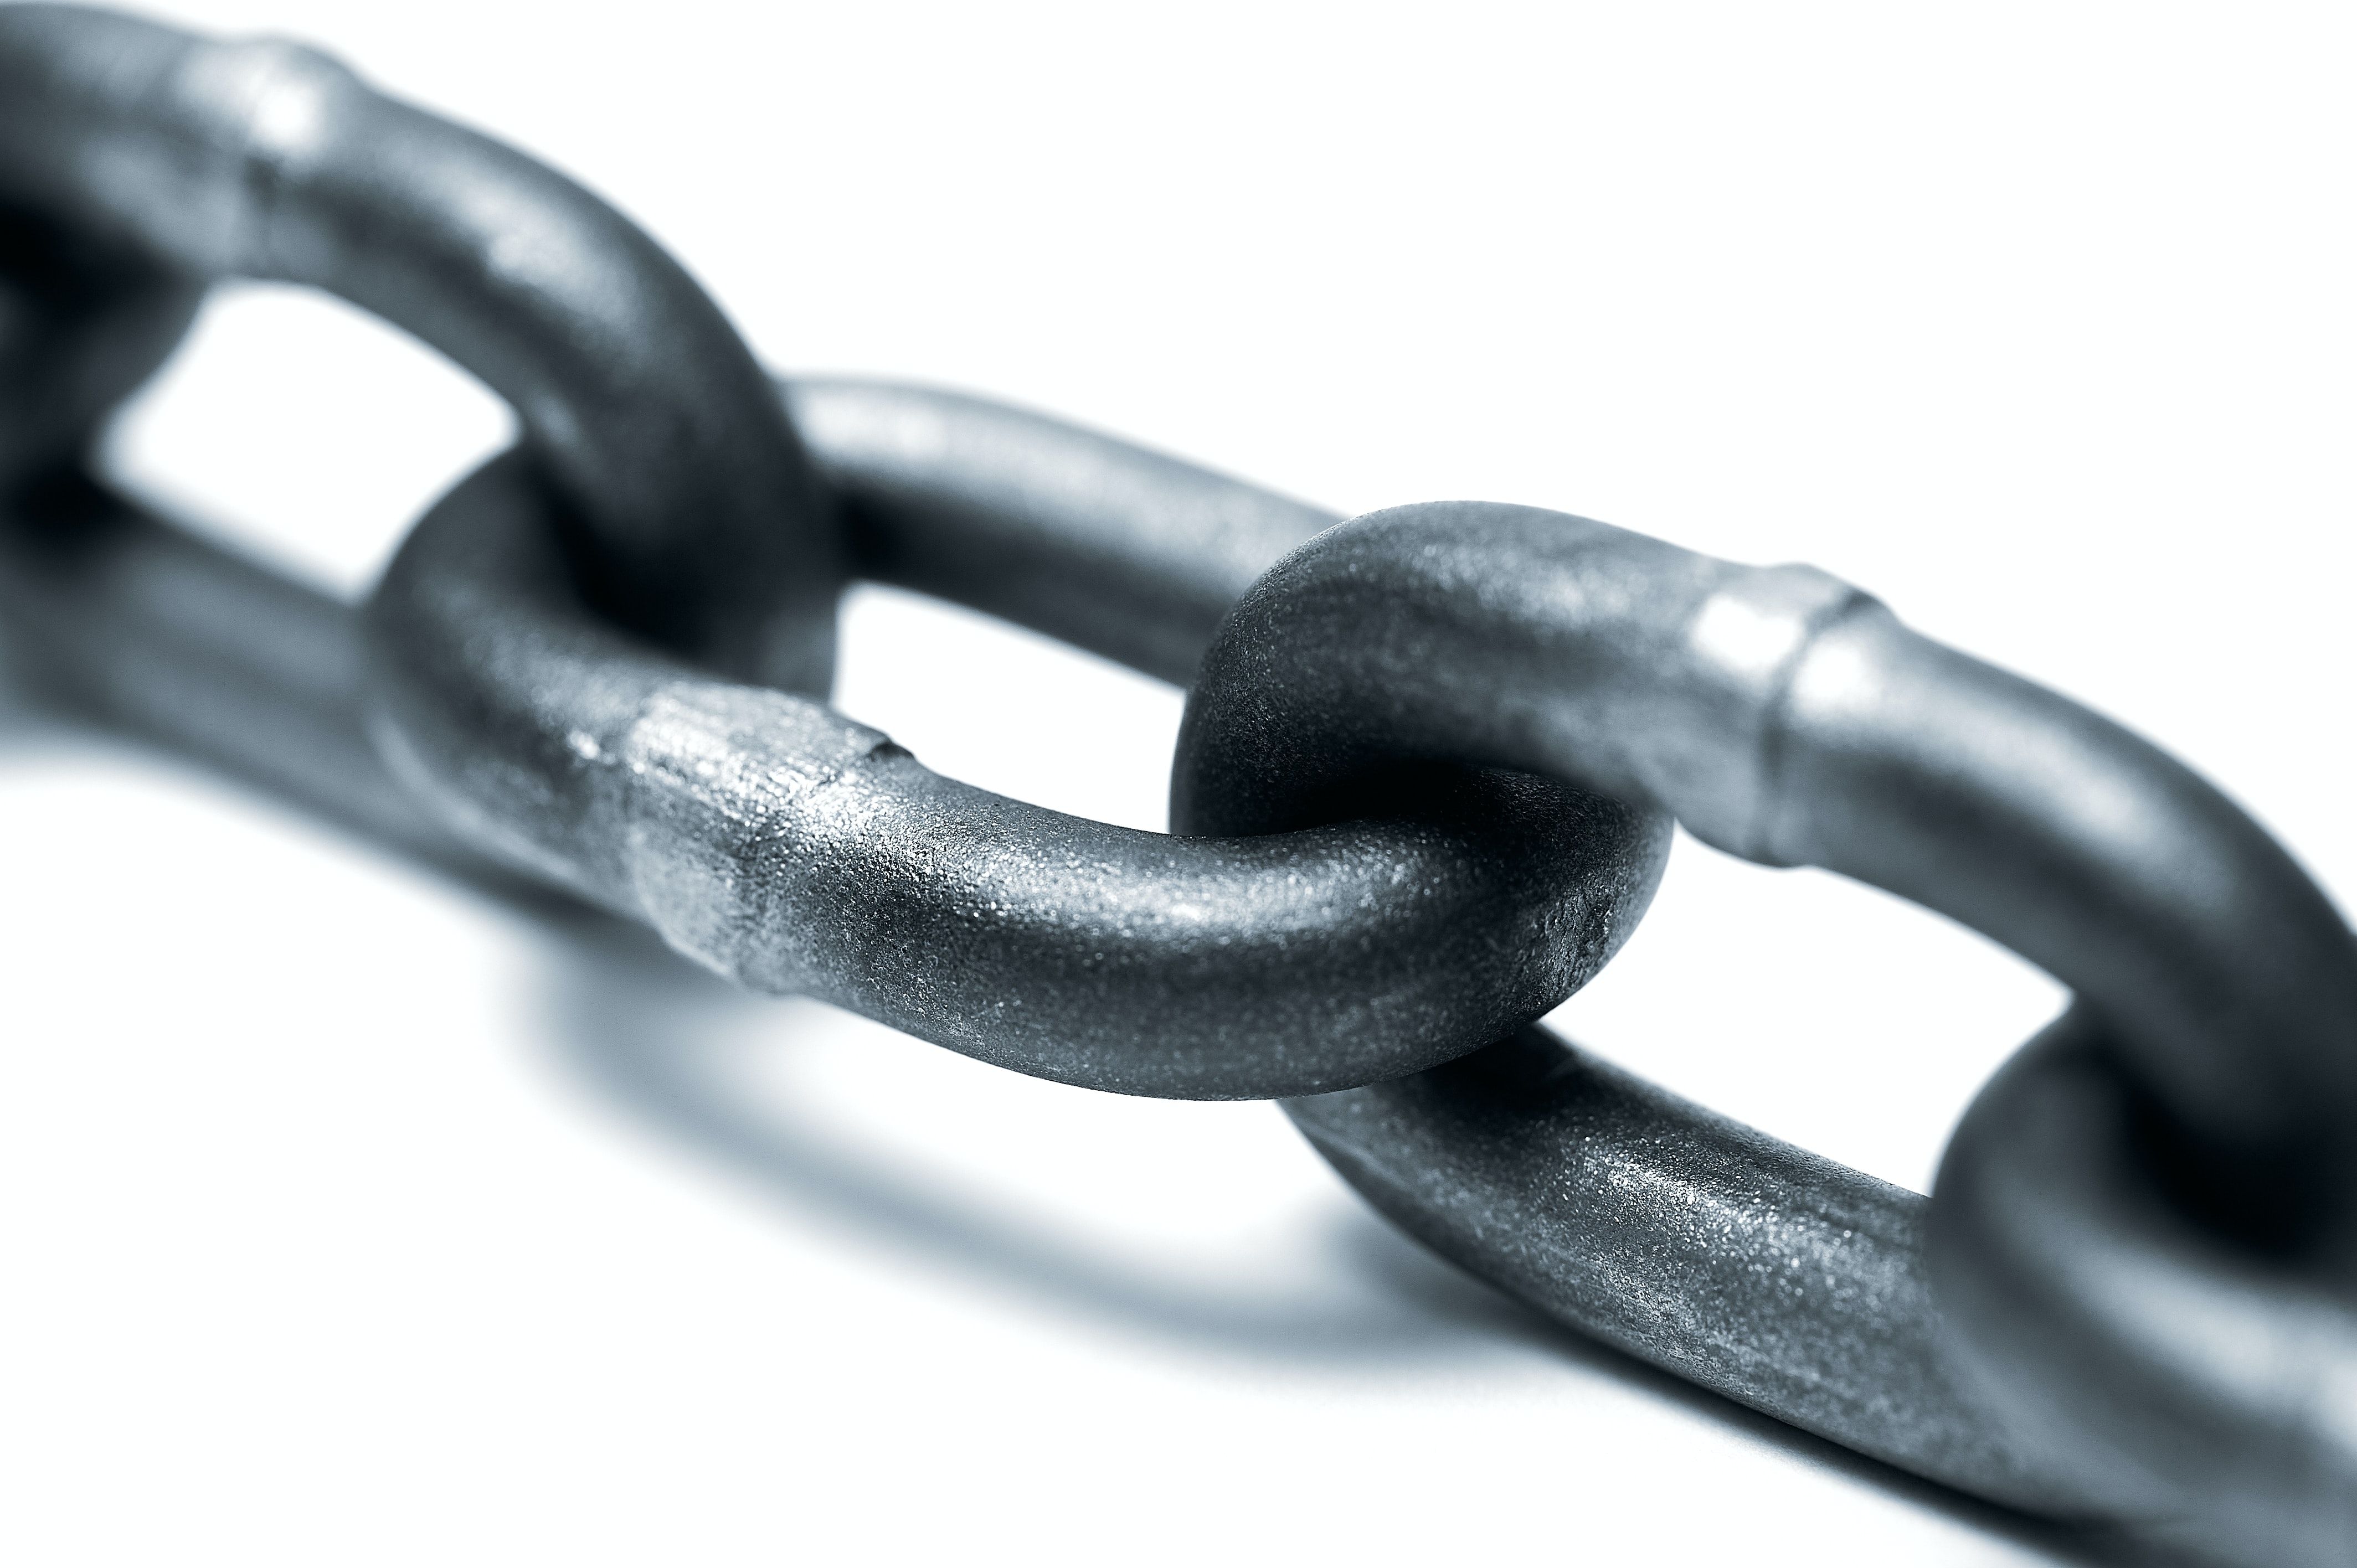 Preventing and diminishing Supply Chain disruptions